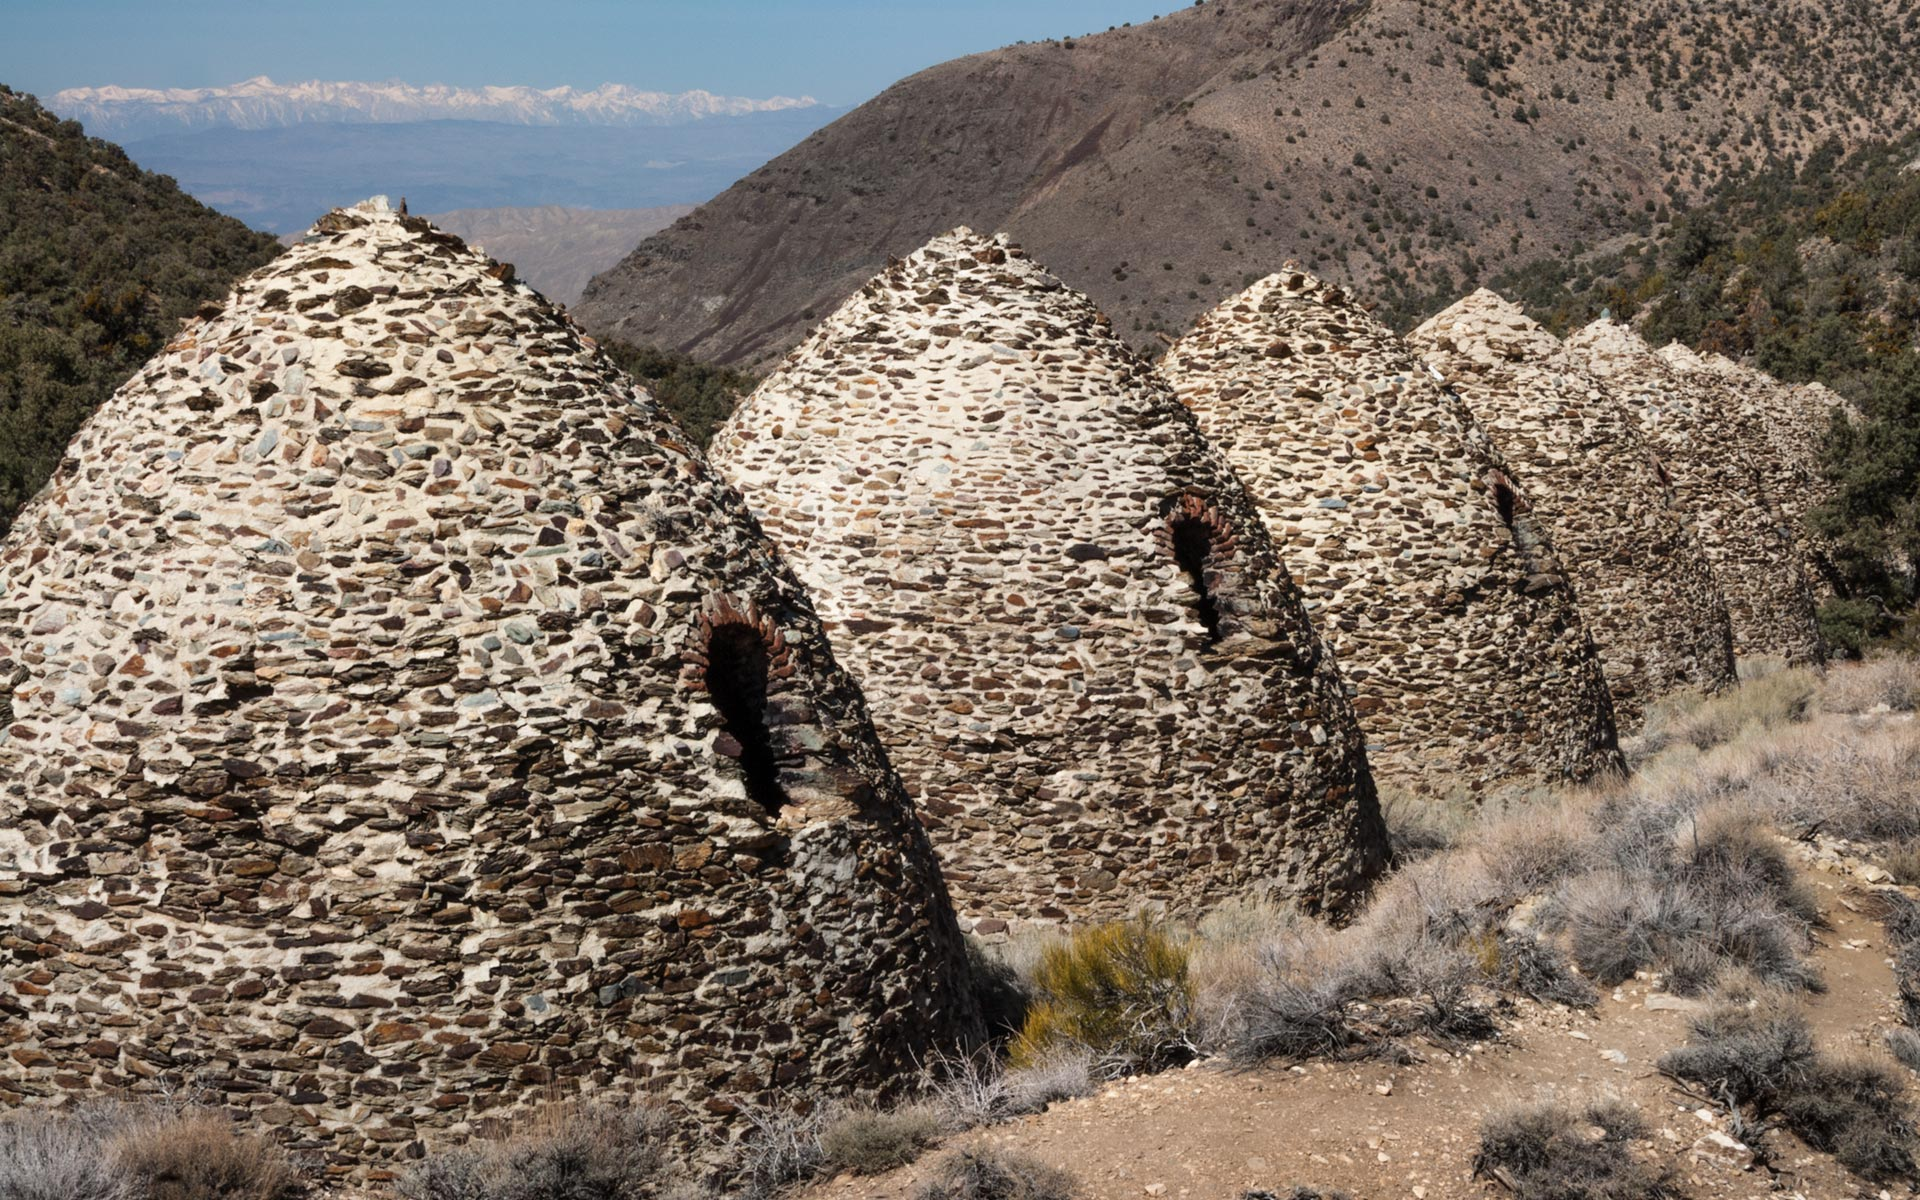 Charcoal Kiln, Death Valley